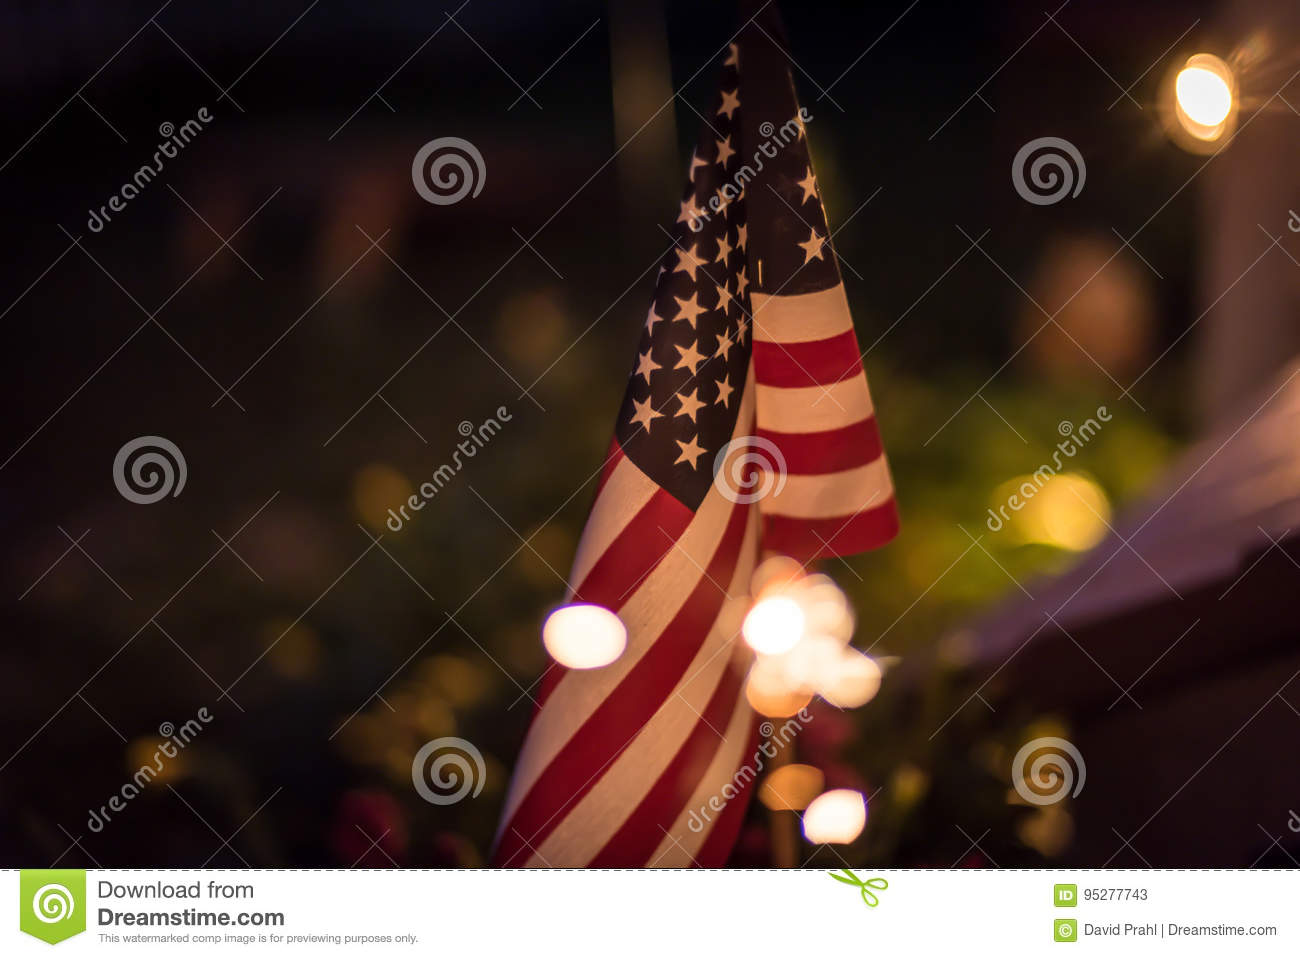 American flag at night with sparklers and bokeh lights